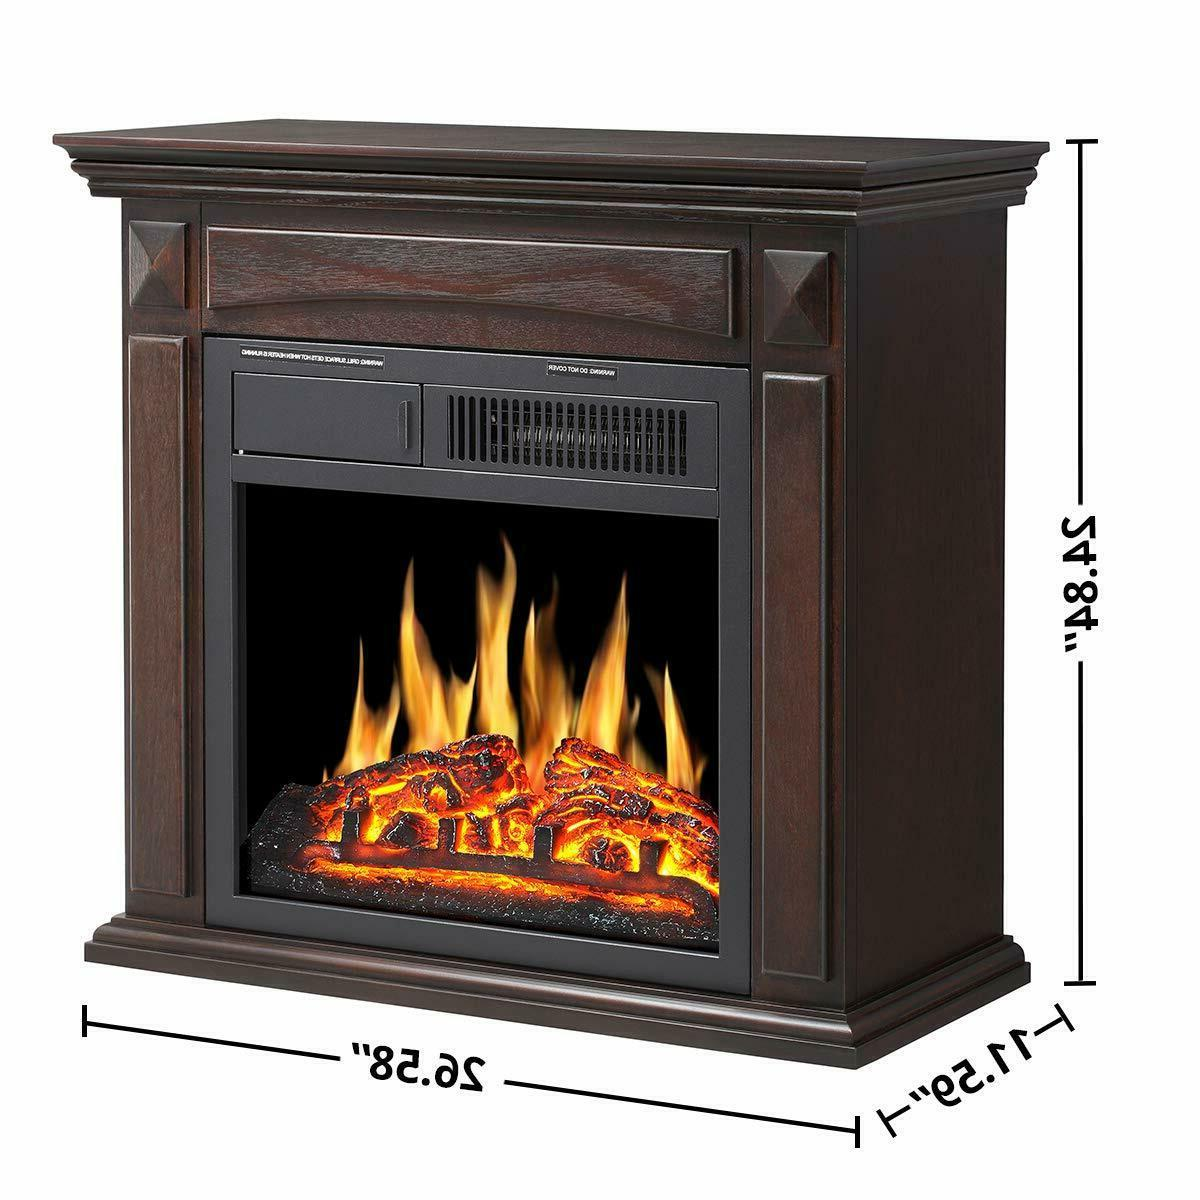 Electric Fireplace Mantel Wooden Surround Firebox,Freestanding deco